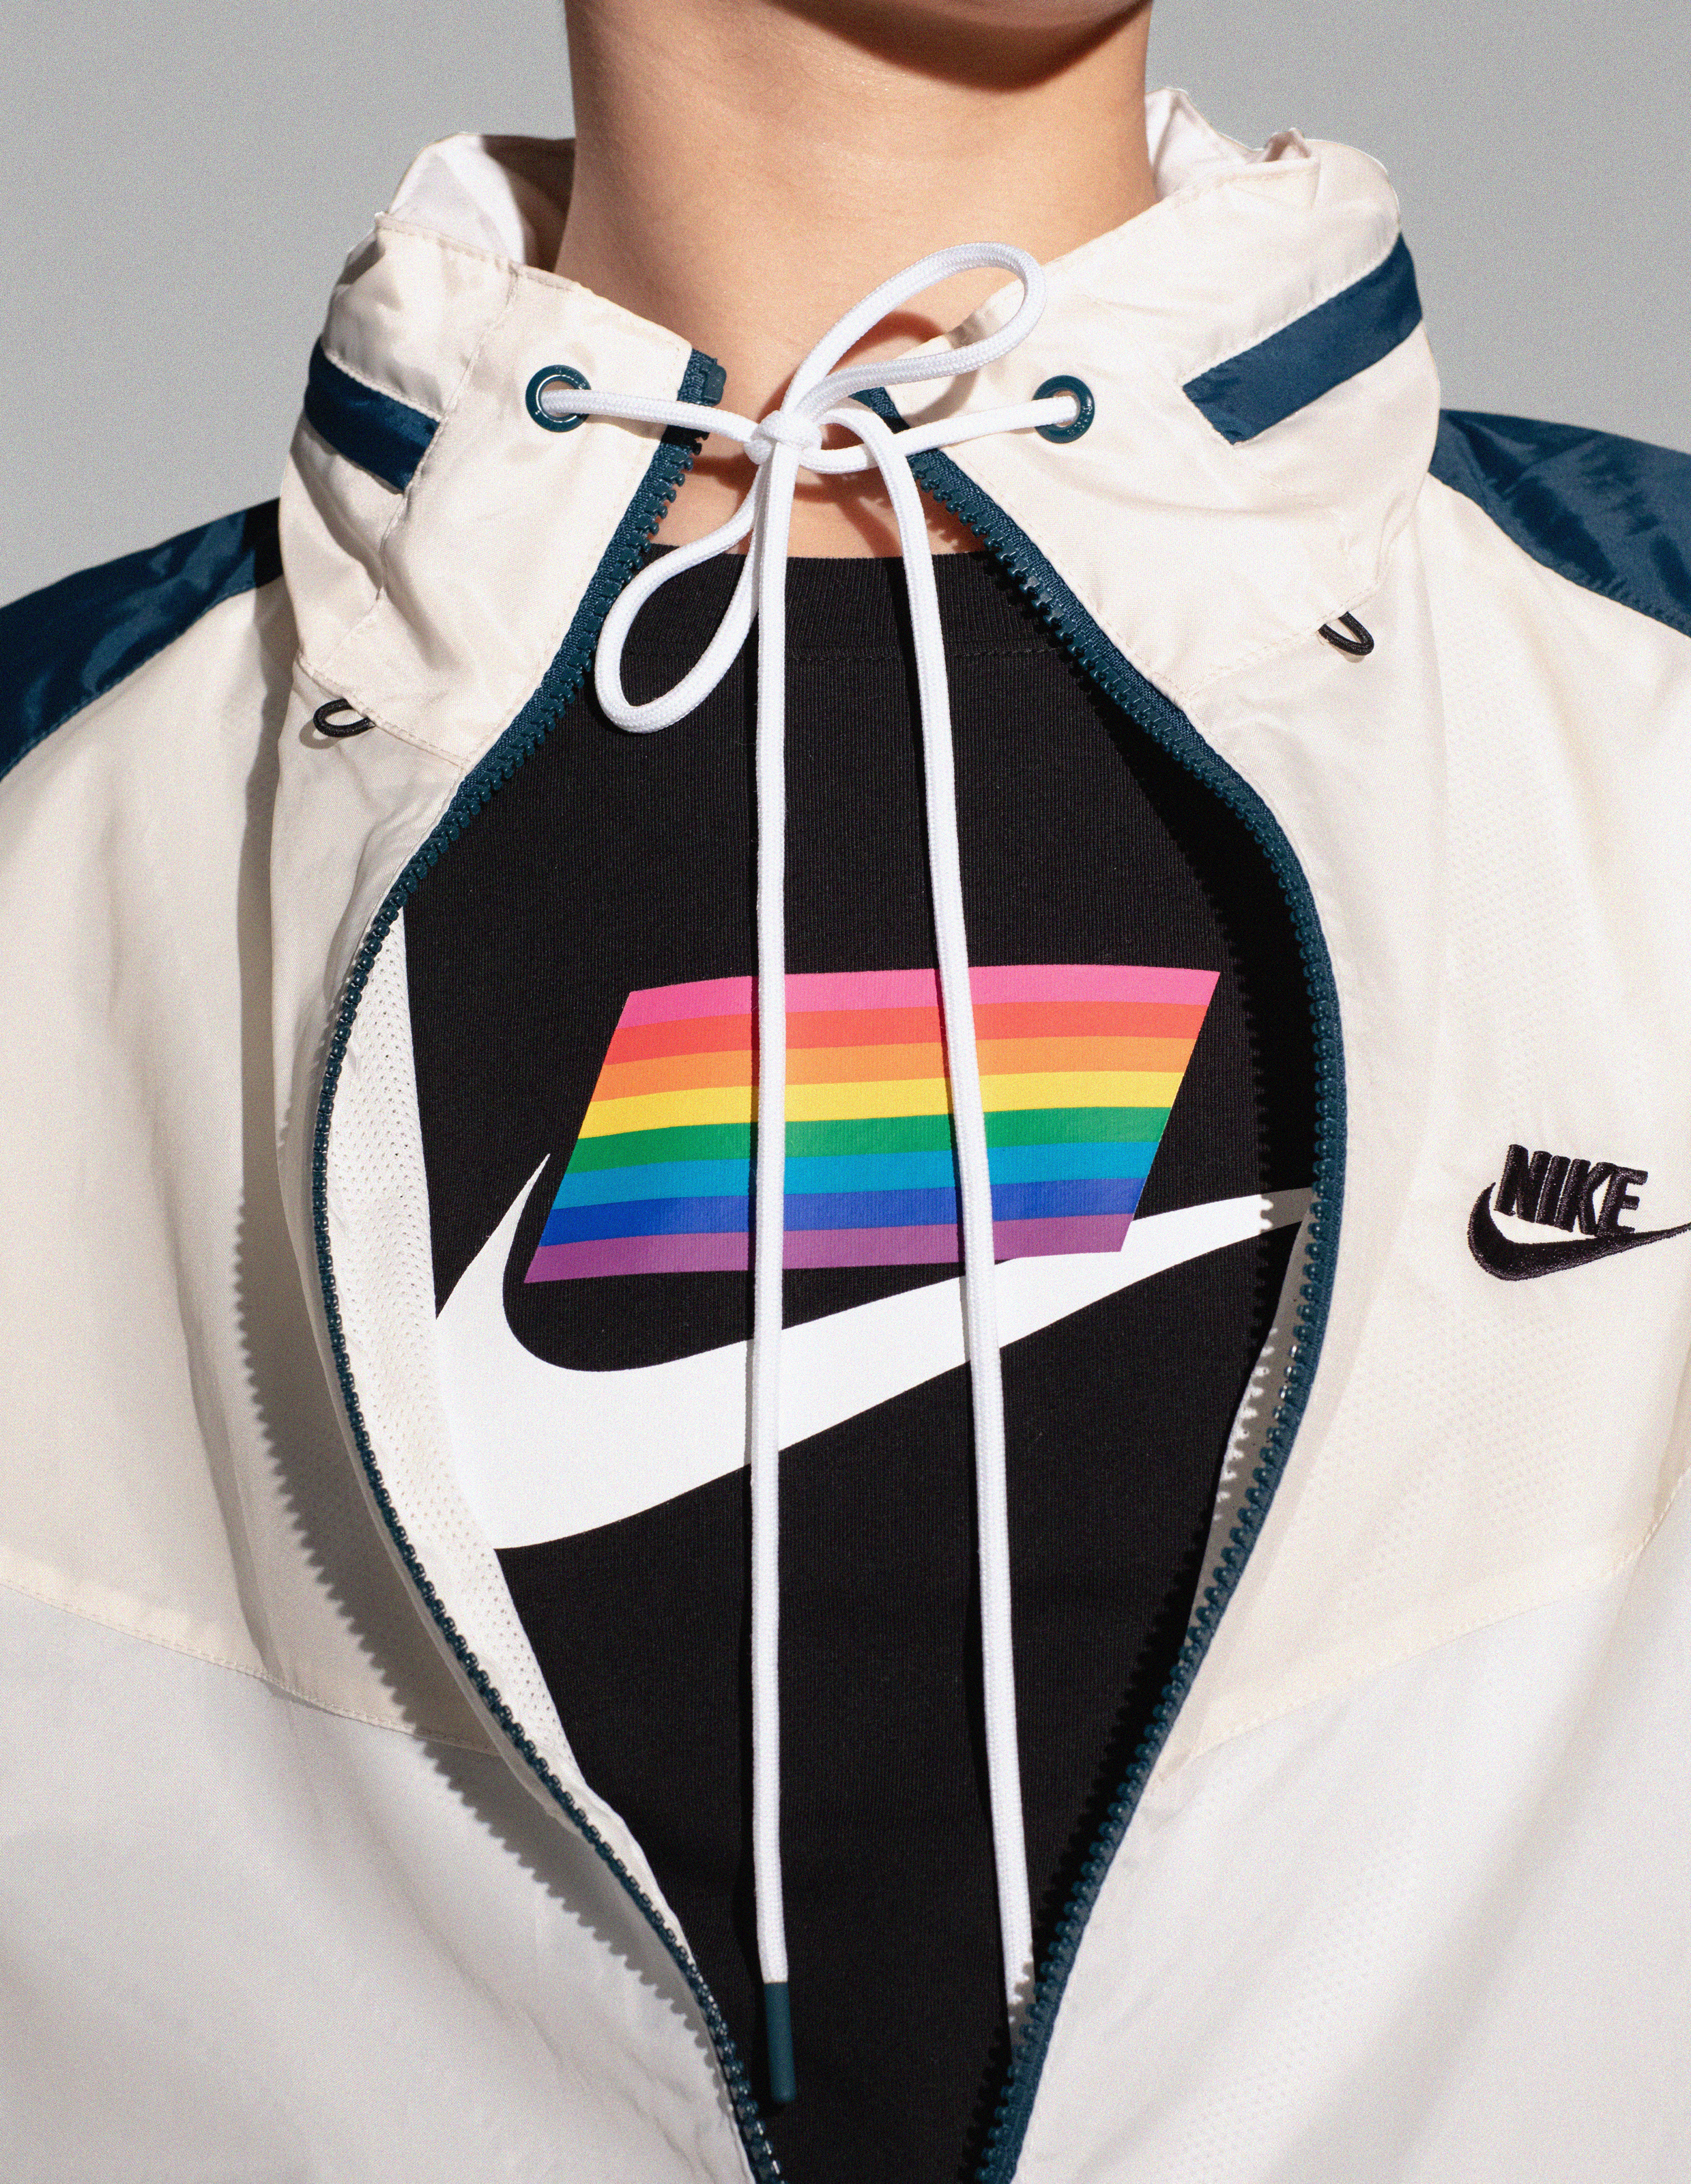 Nike-BETRUE-2019-Collection-12_original.jpg